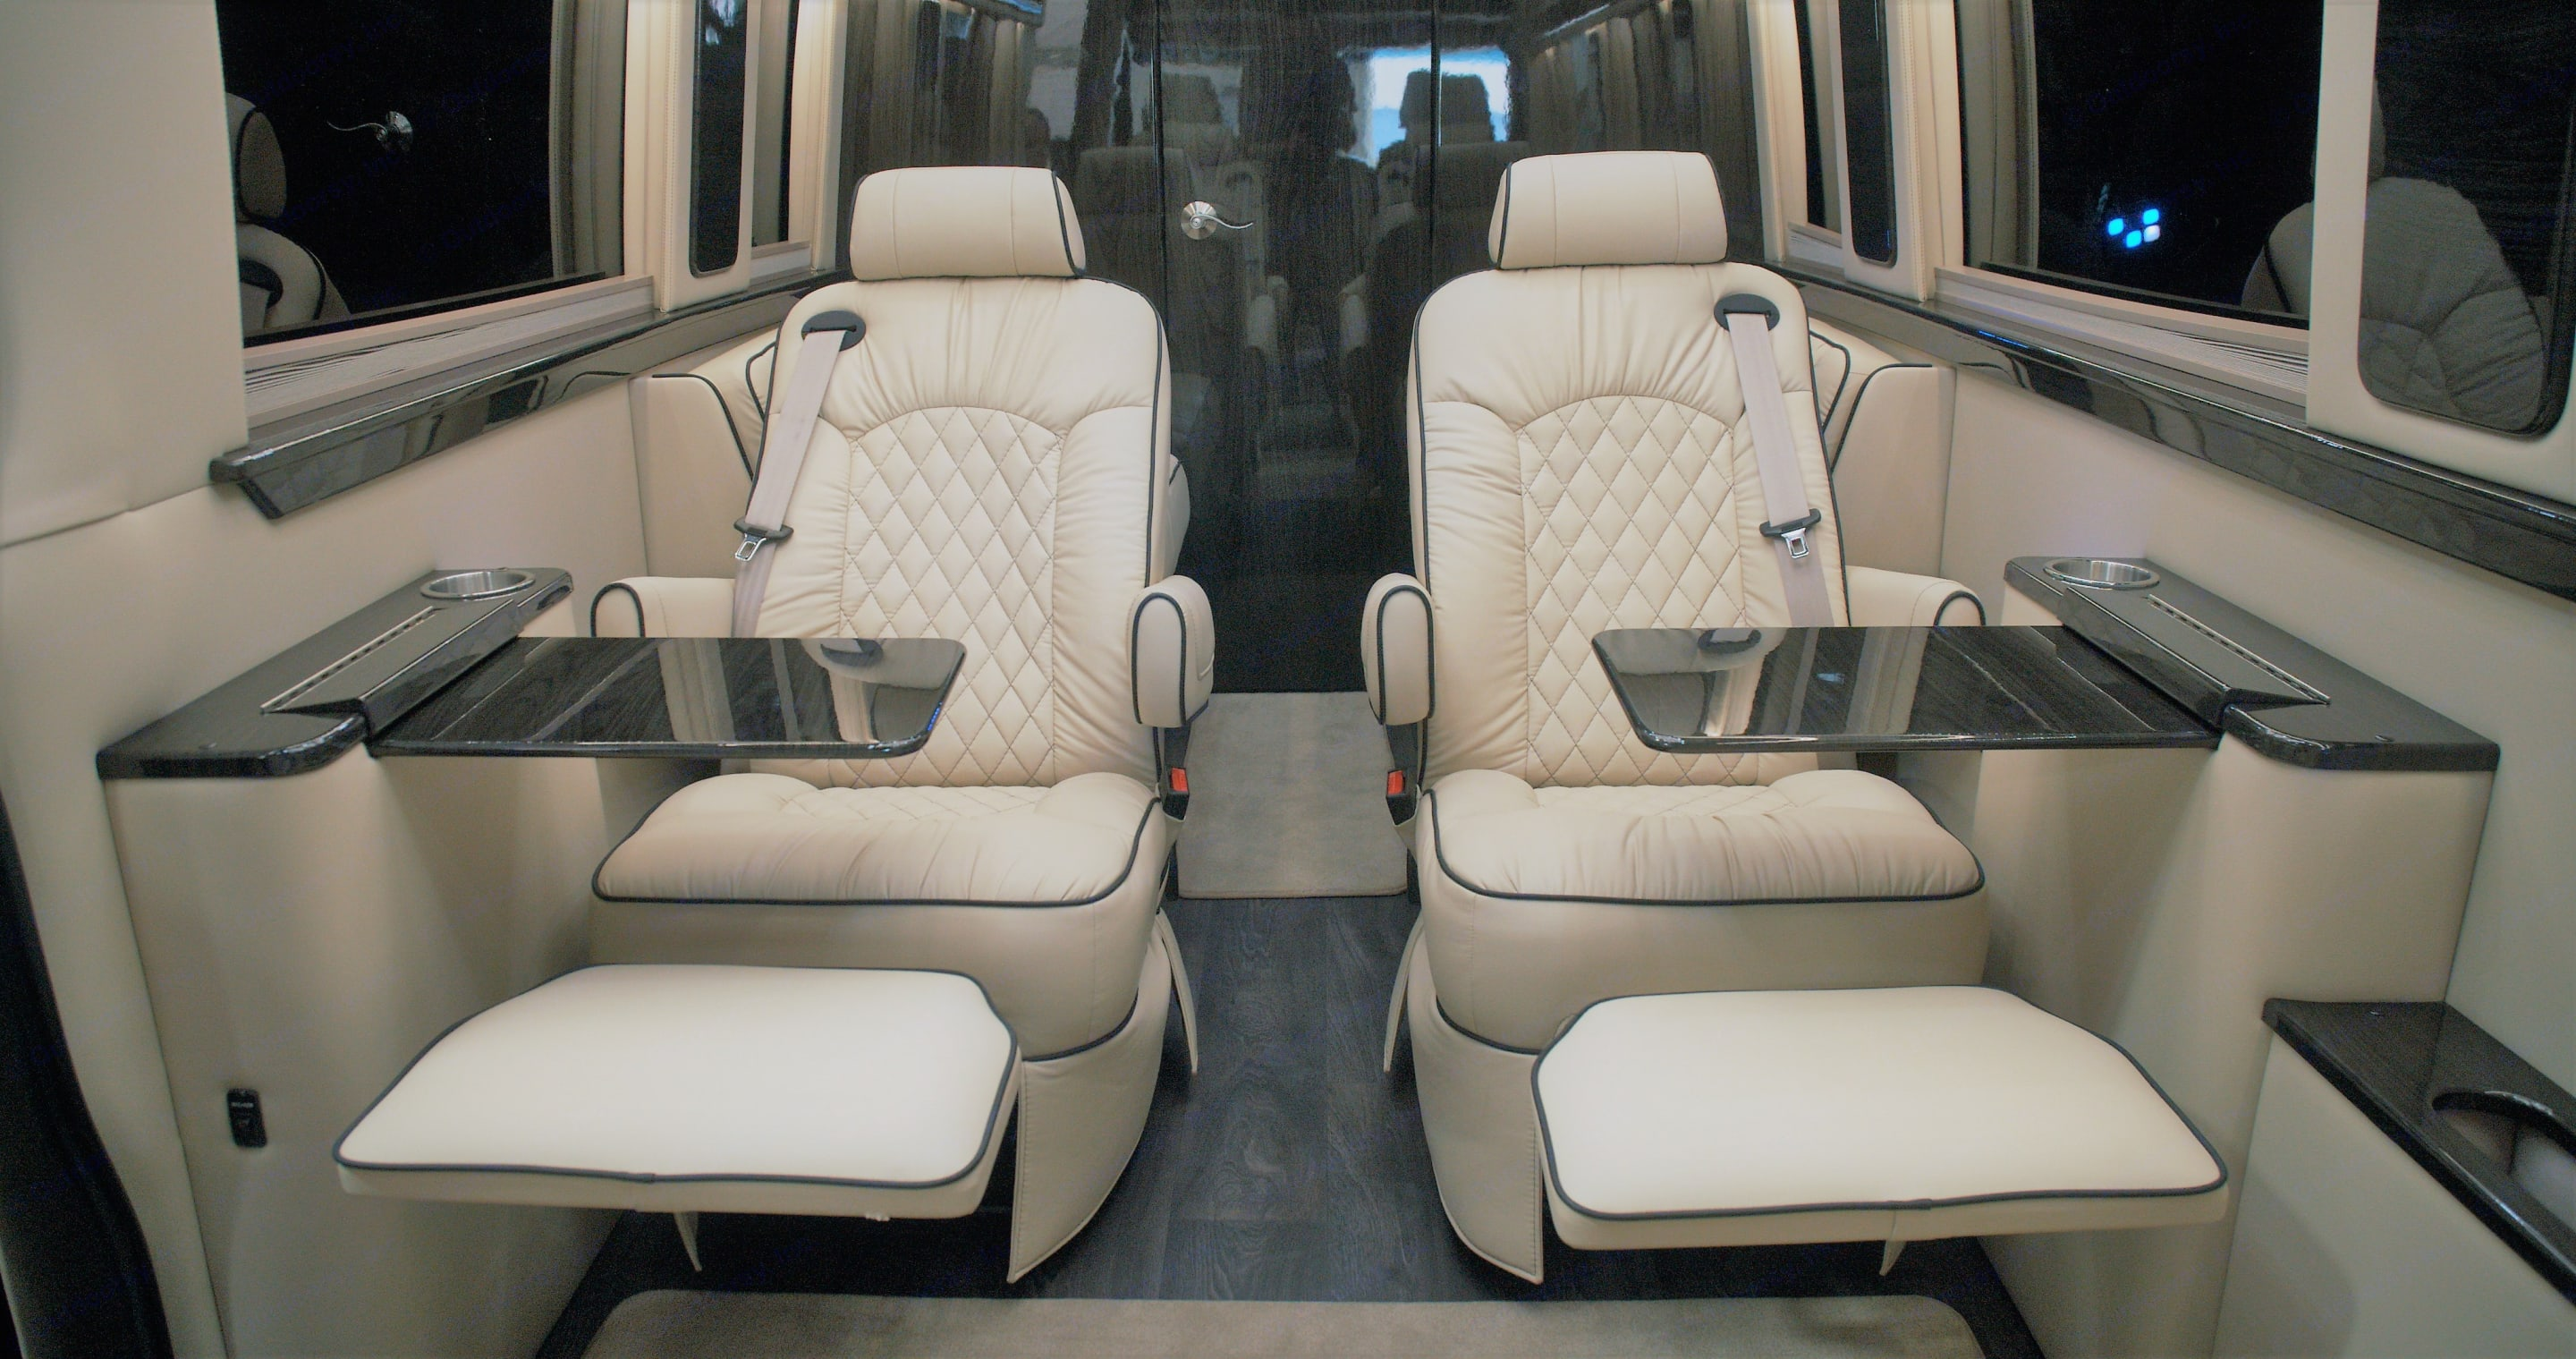 Convenient pull out tables and foot rests.. Mercedes Sprinter 2020